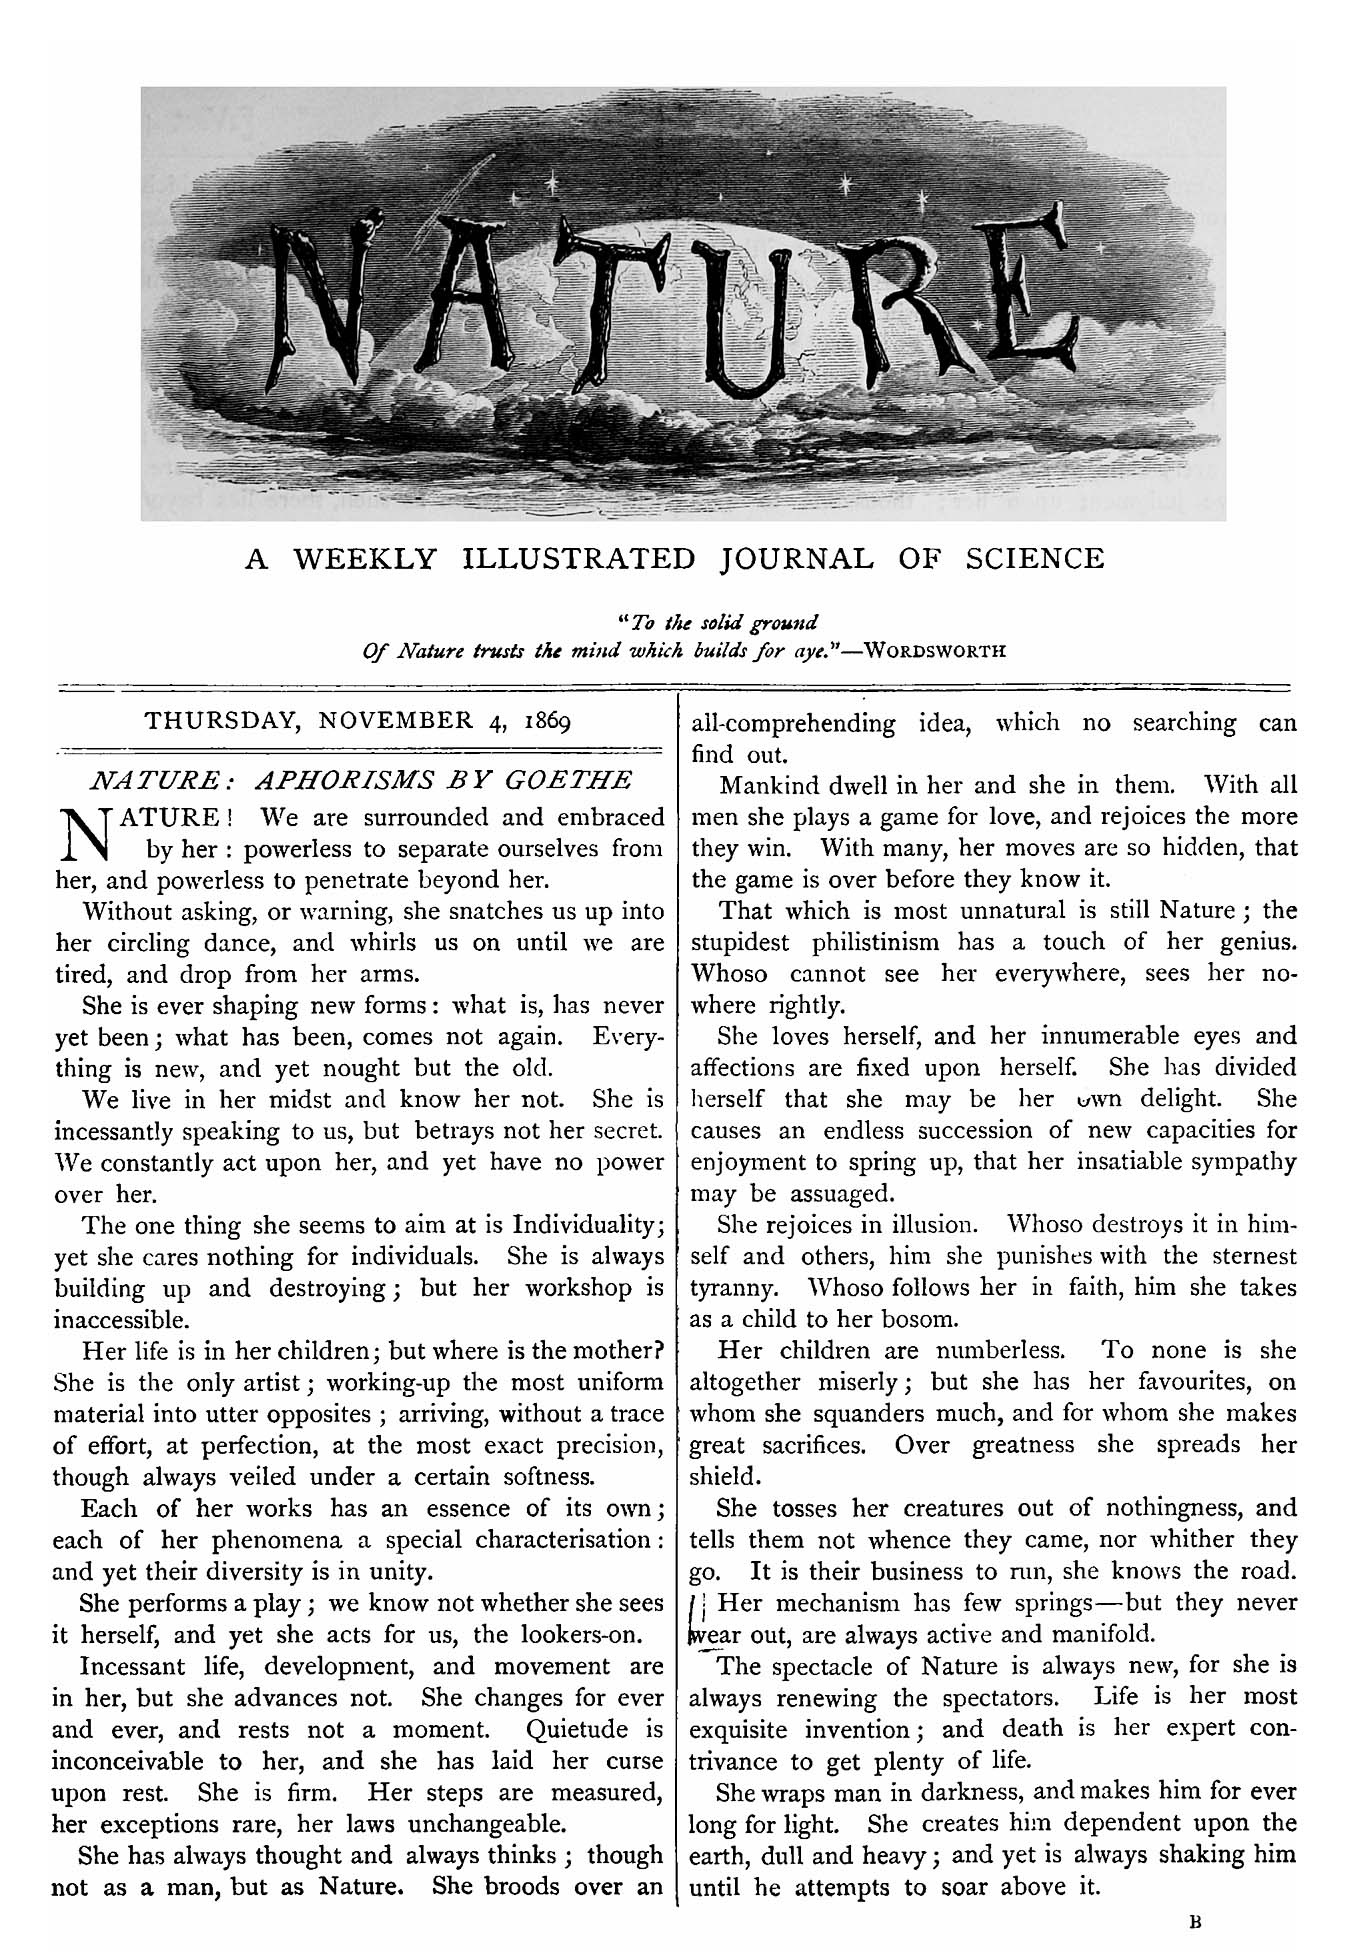 How to Write a Science Article?